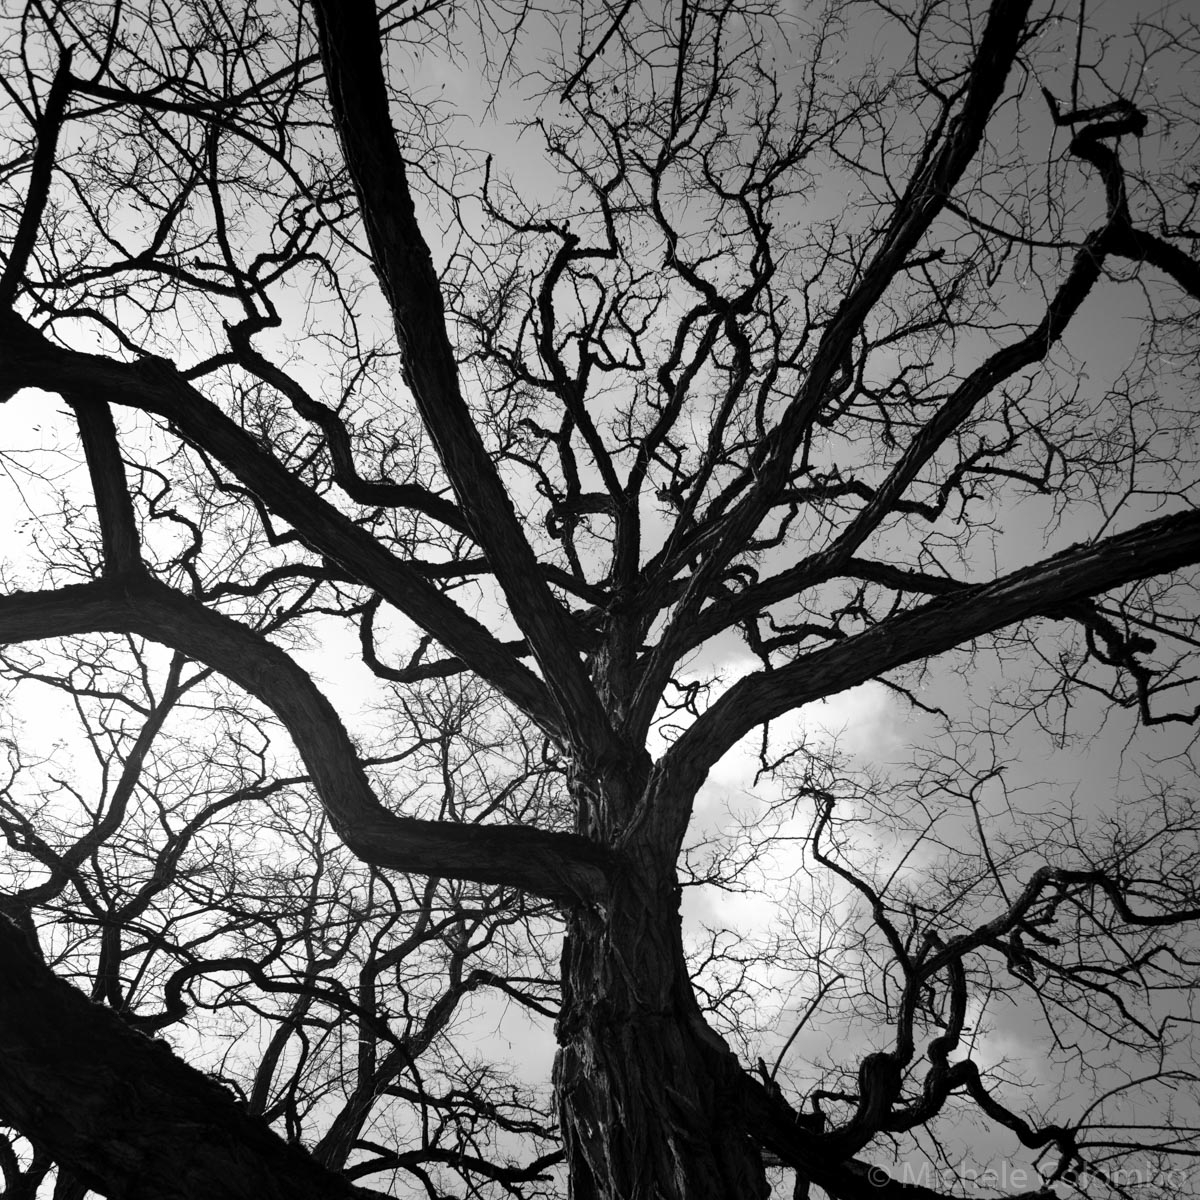 black and white silhouette of a tree